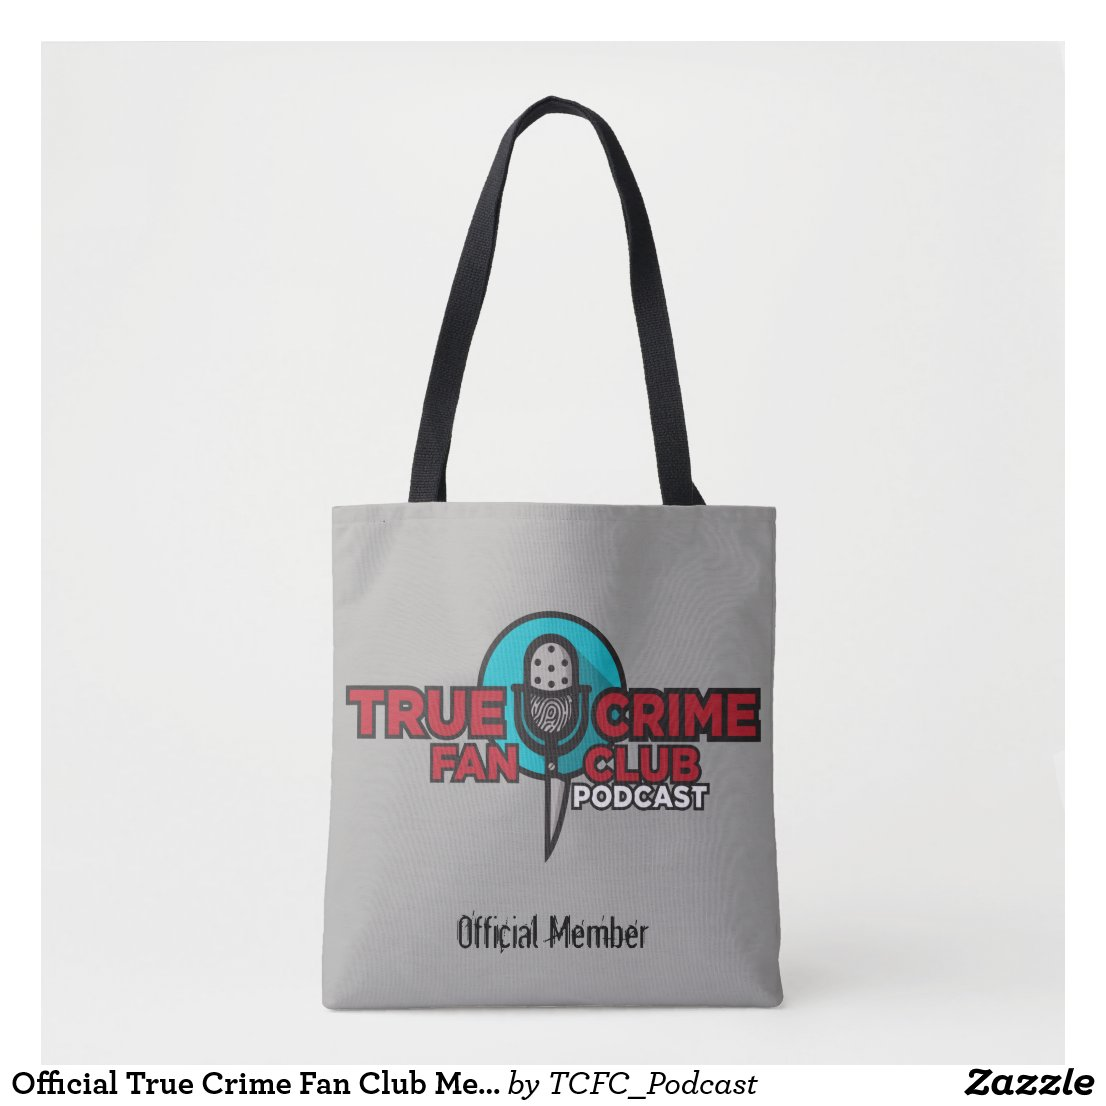 Official True Crime Fan Club Member Tote